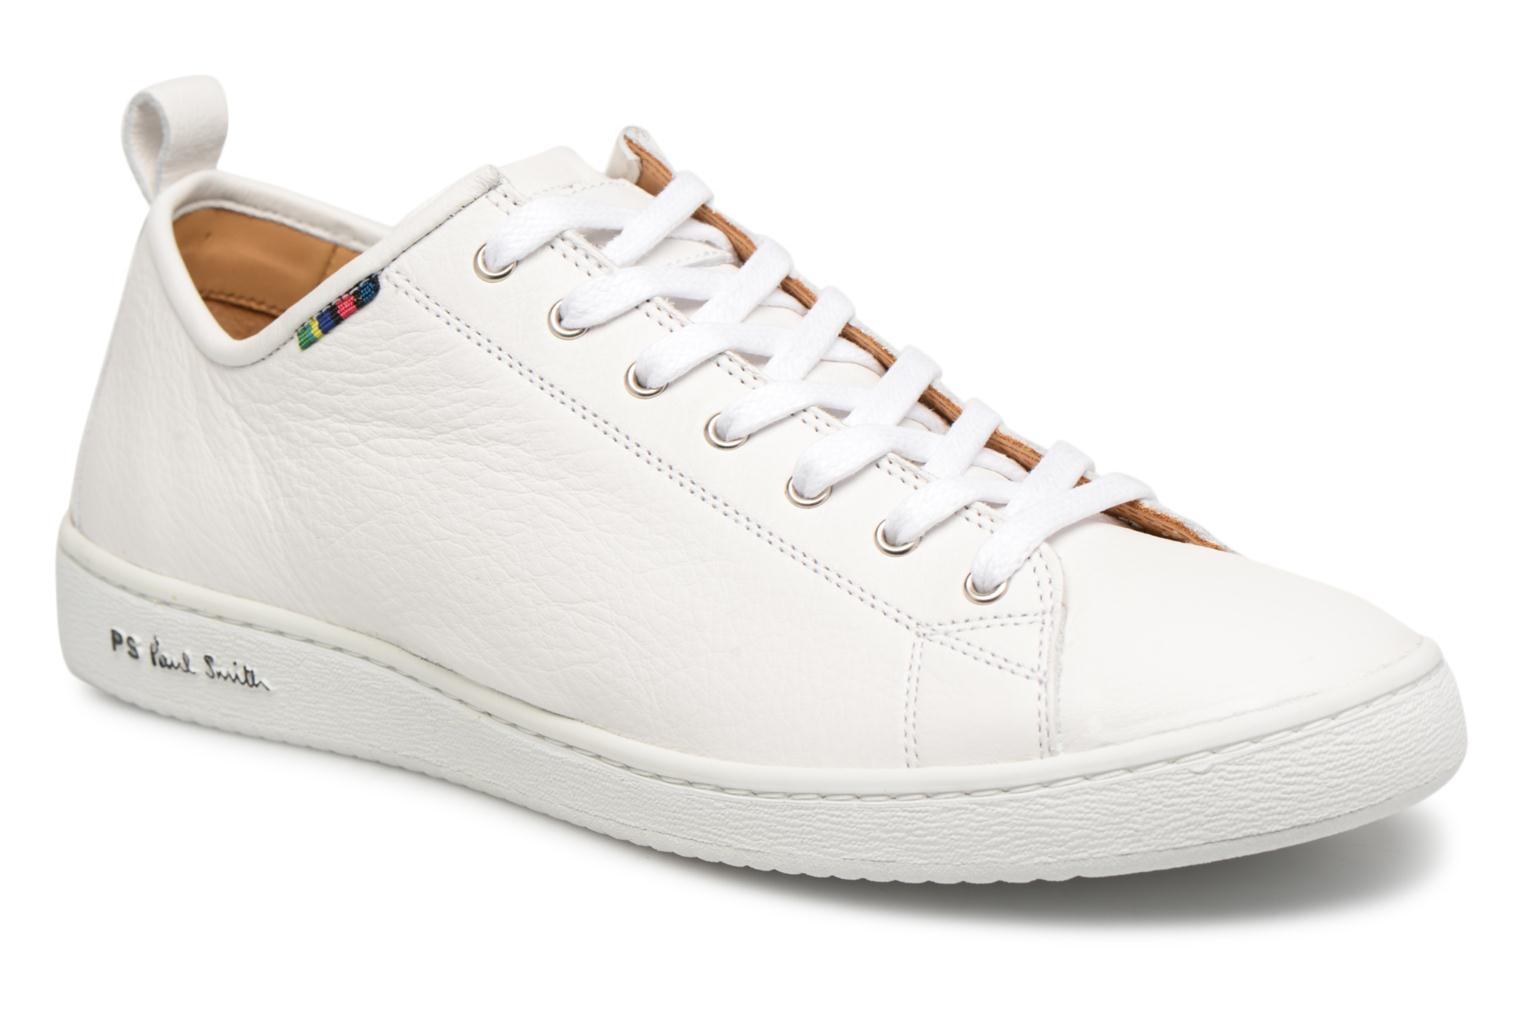 Sneakers Paul Smith Wit